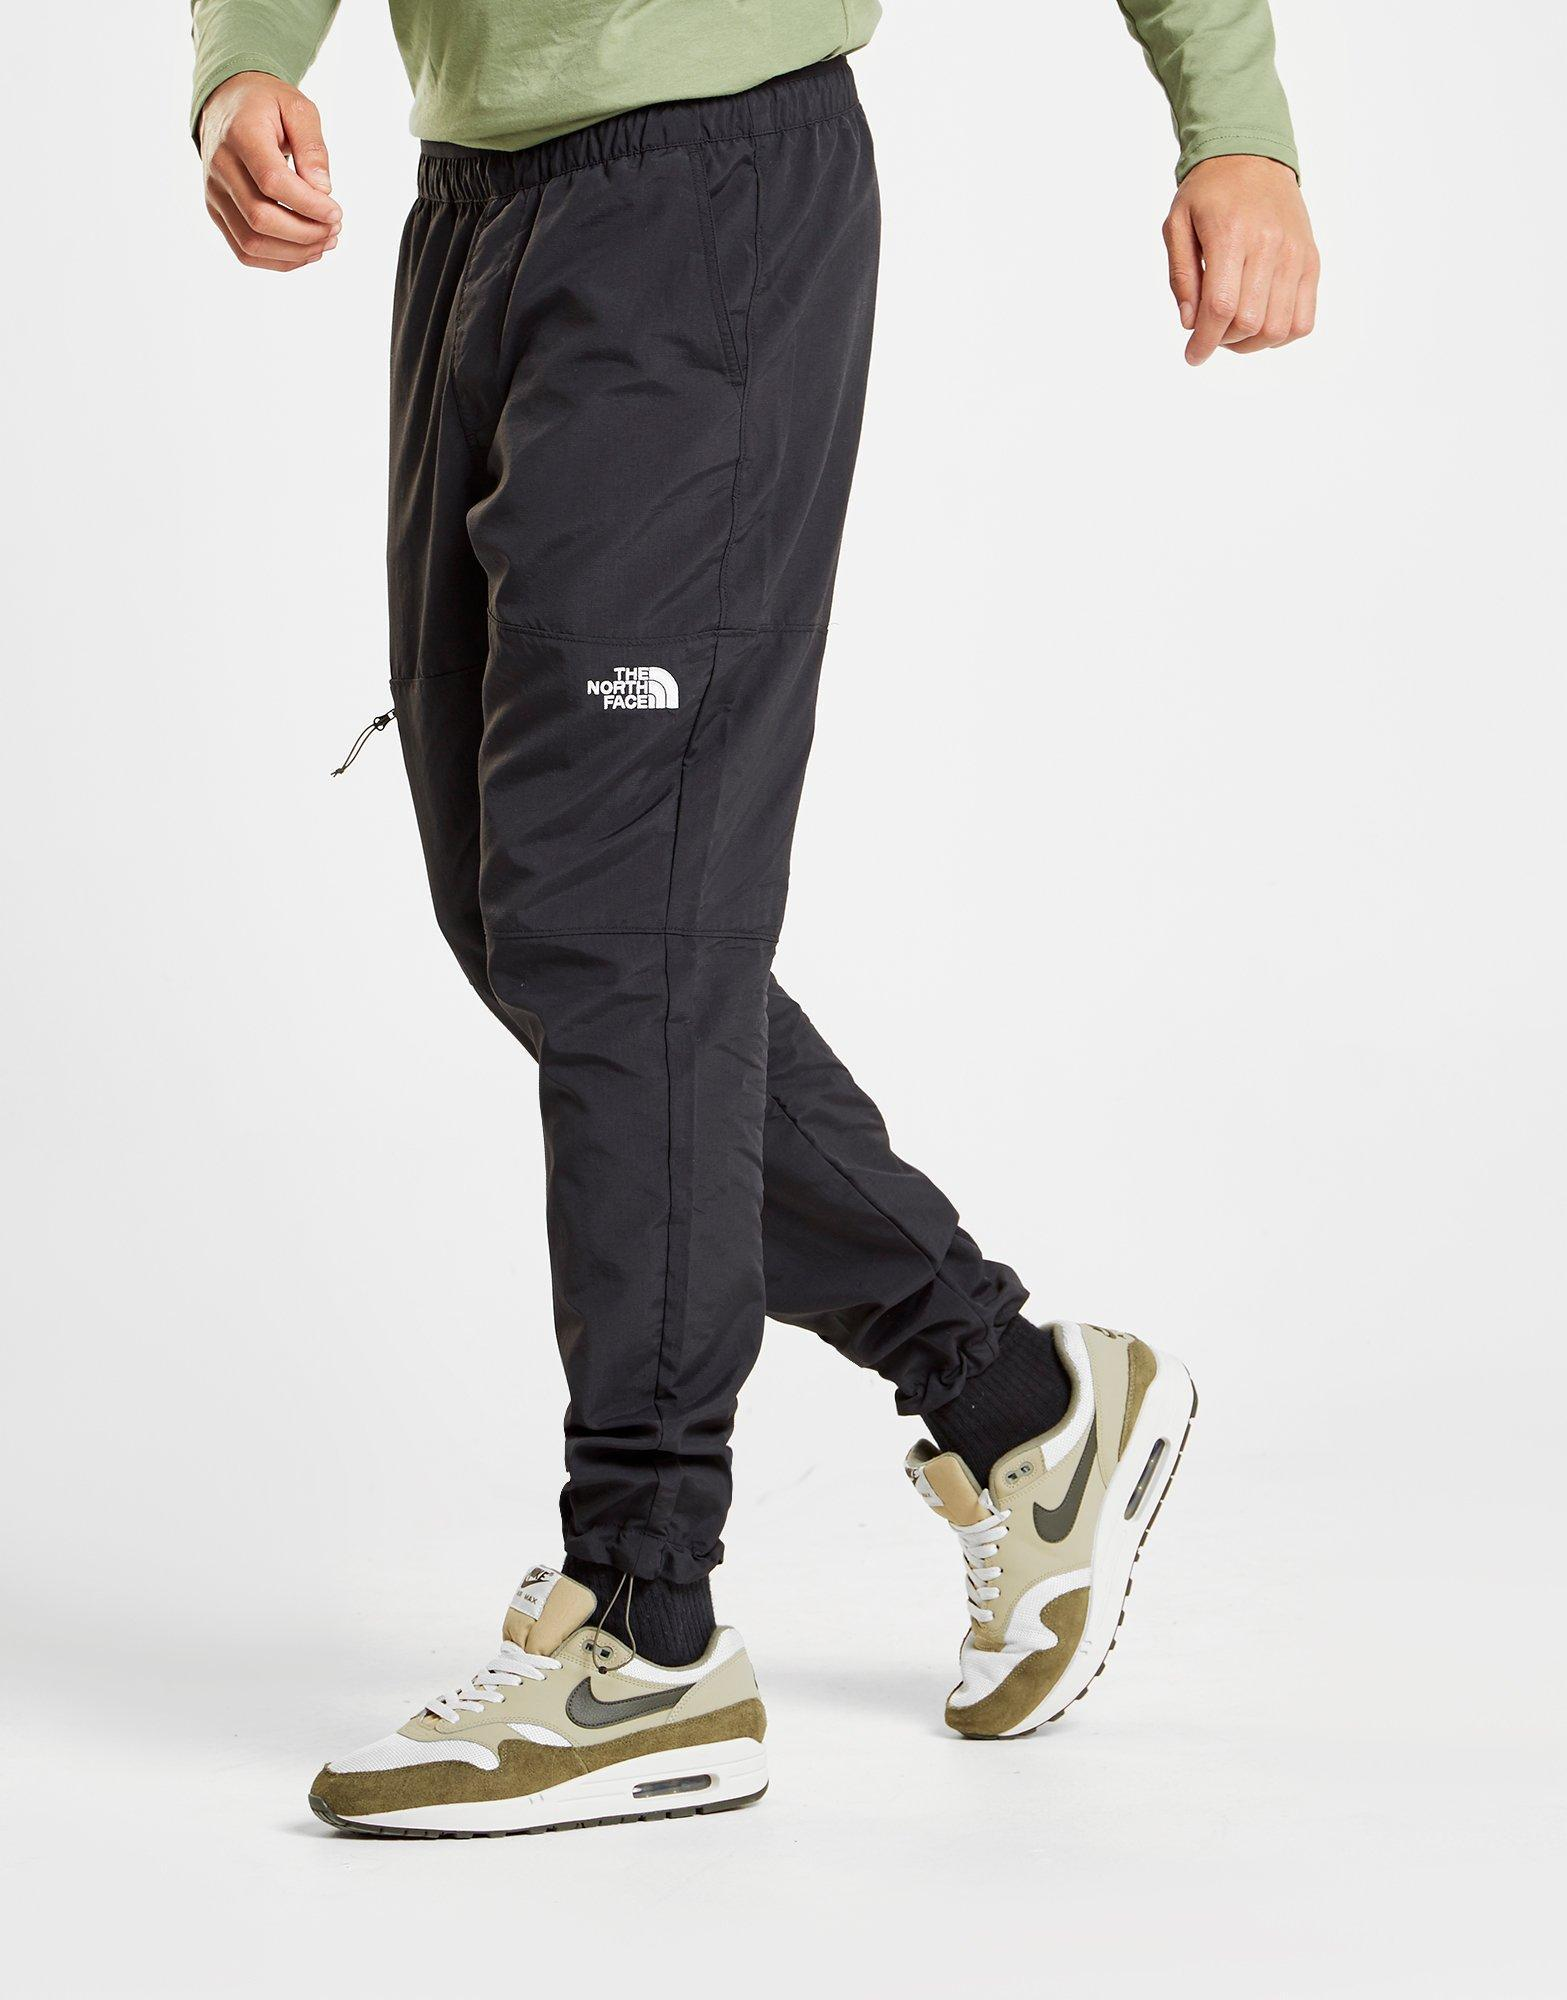 outlet online uk cheap sale where to buy The North Face Synthetic Z-pocket Cargo Track Pants in Black ...